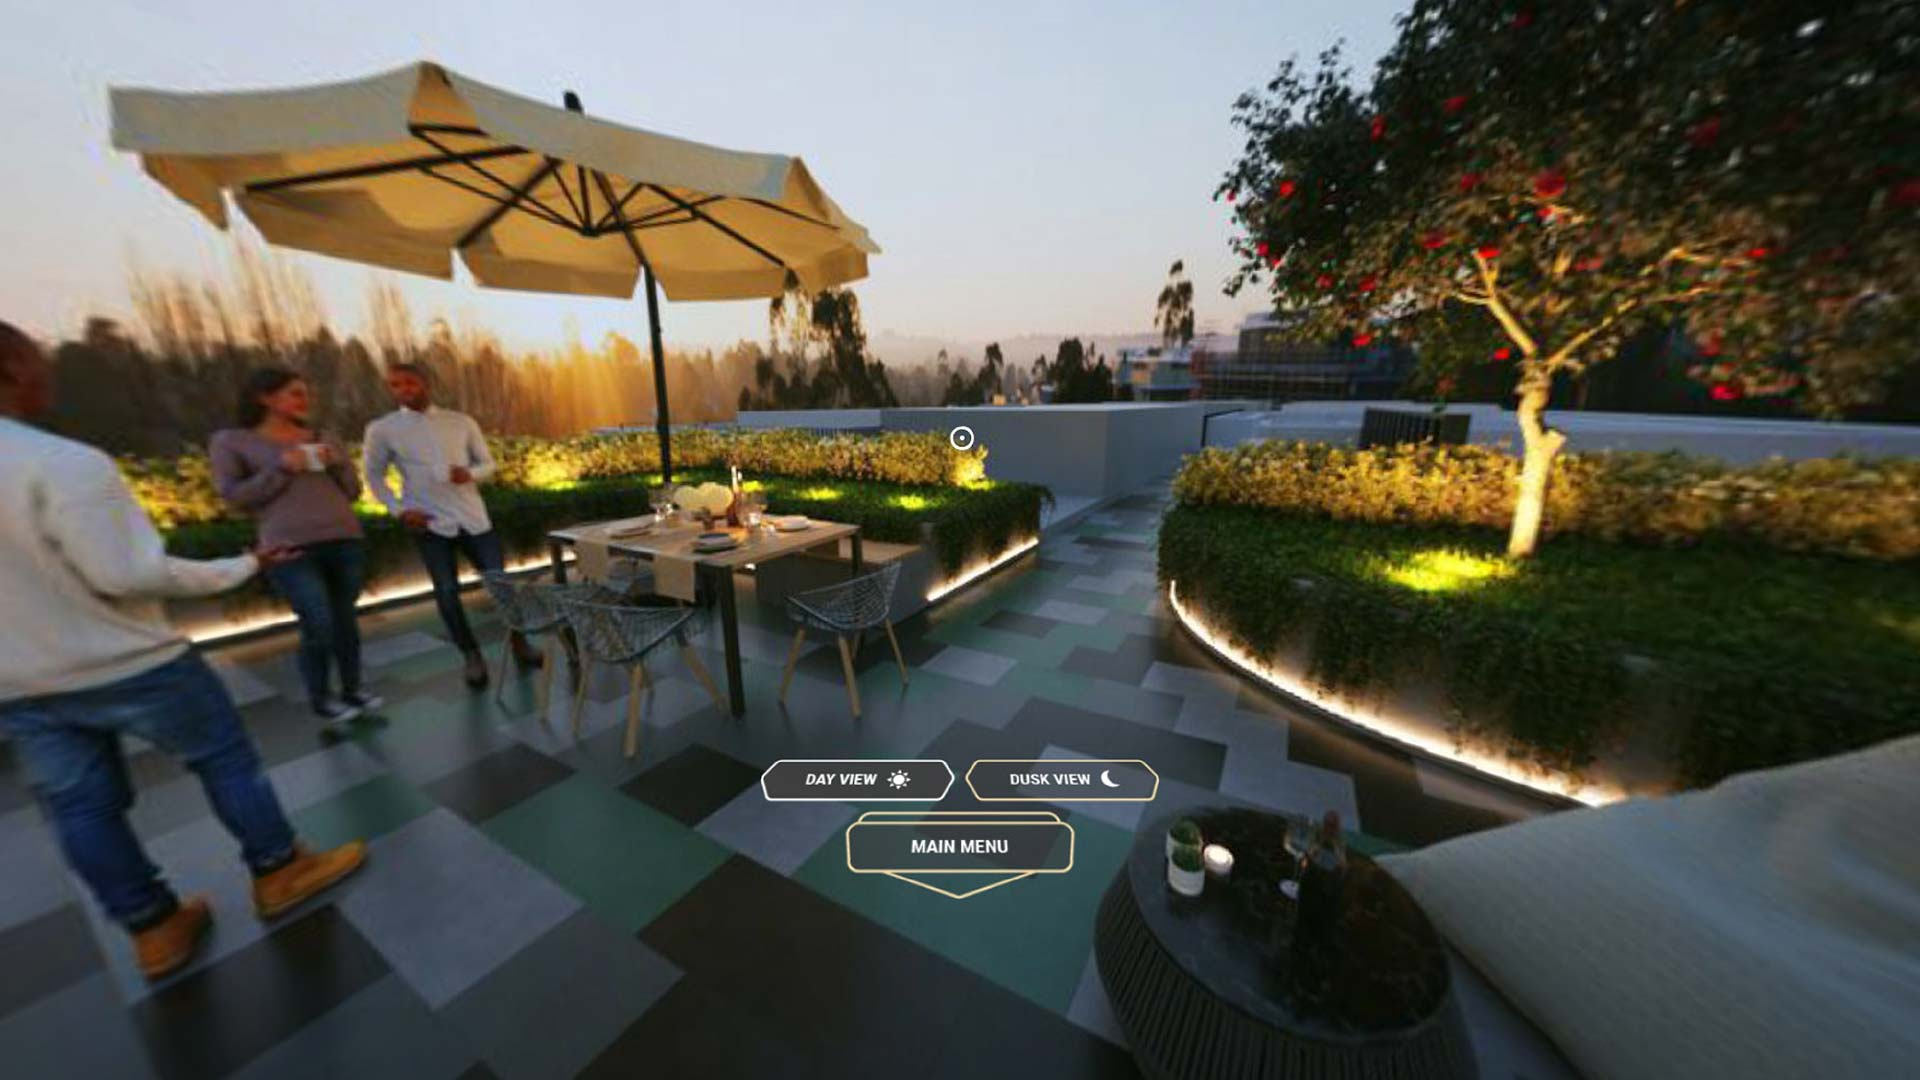 Real Estate VR Image of Chatswood Rose VR by Start Beyond 05